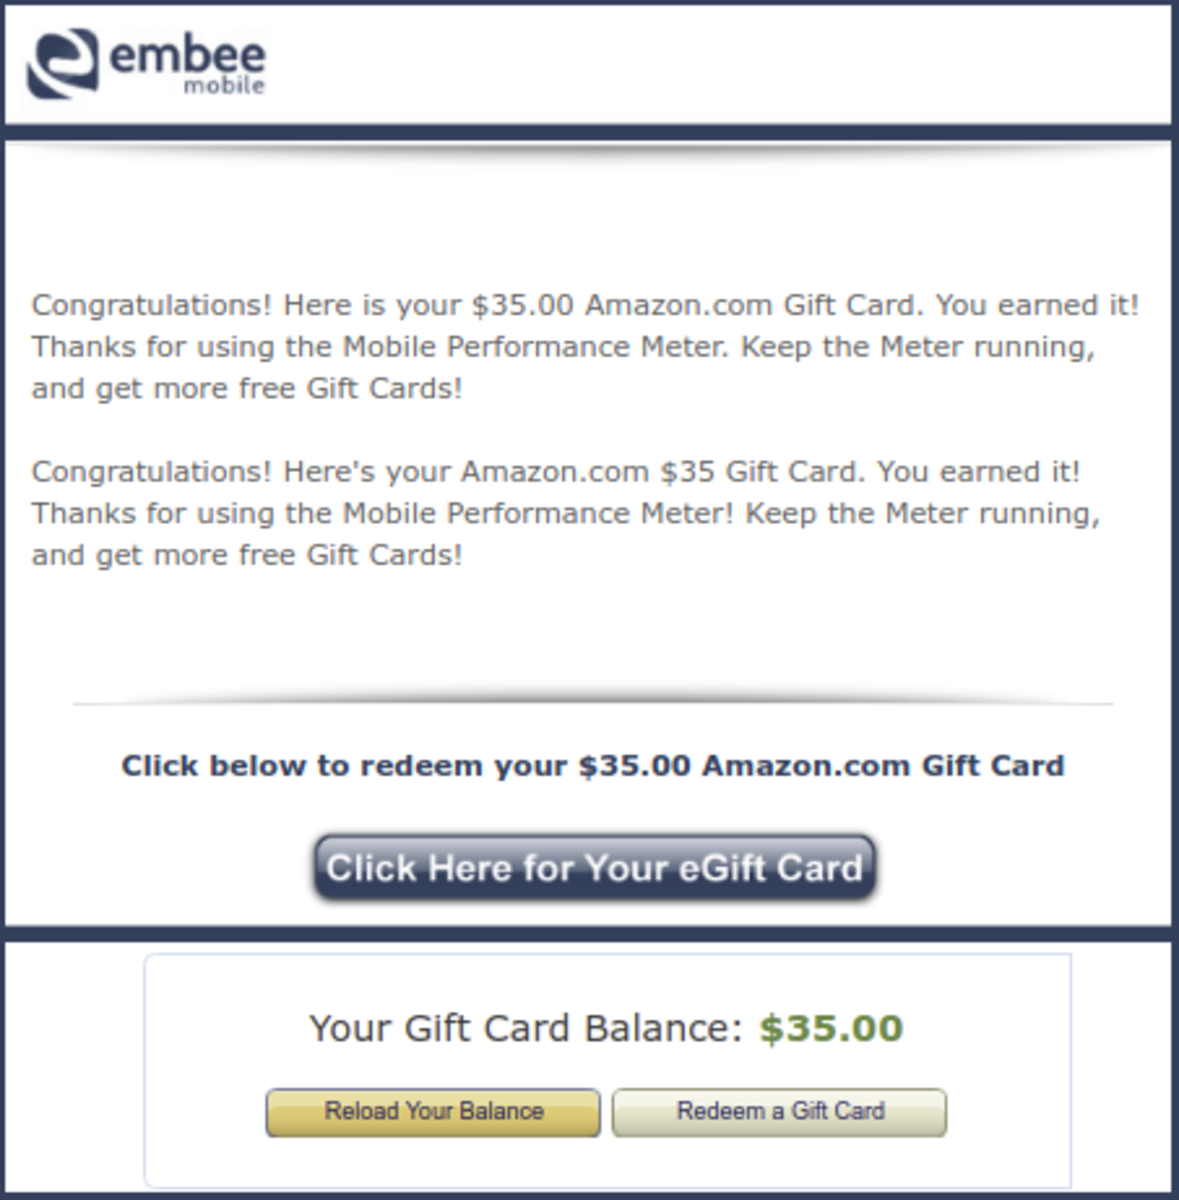 Email from Embee with my Amazon gift card and my Amazon balance.